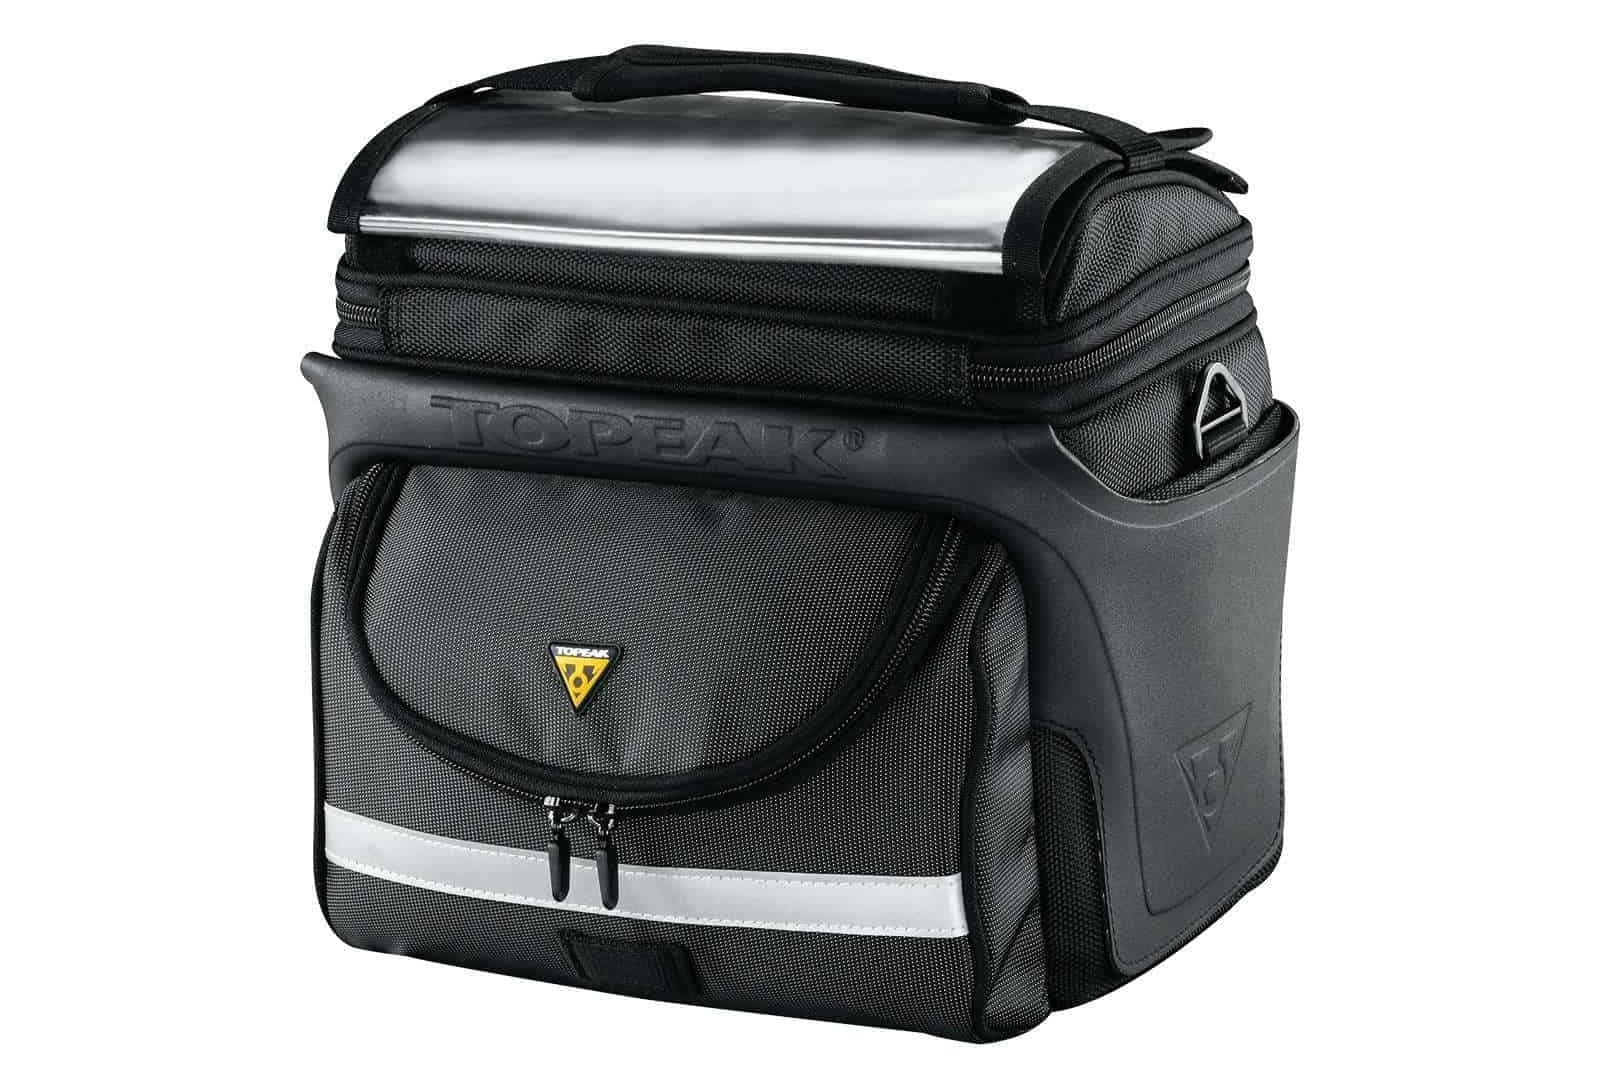 Best Handle Bar Bag for touring Topeak Topeak TourGuide DX with Fixer 8